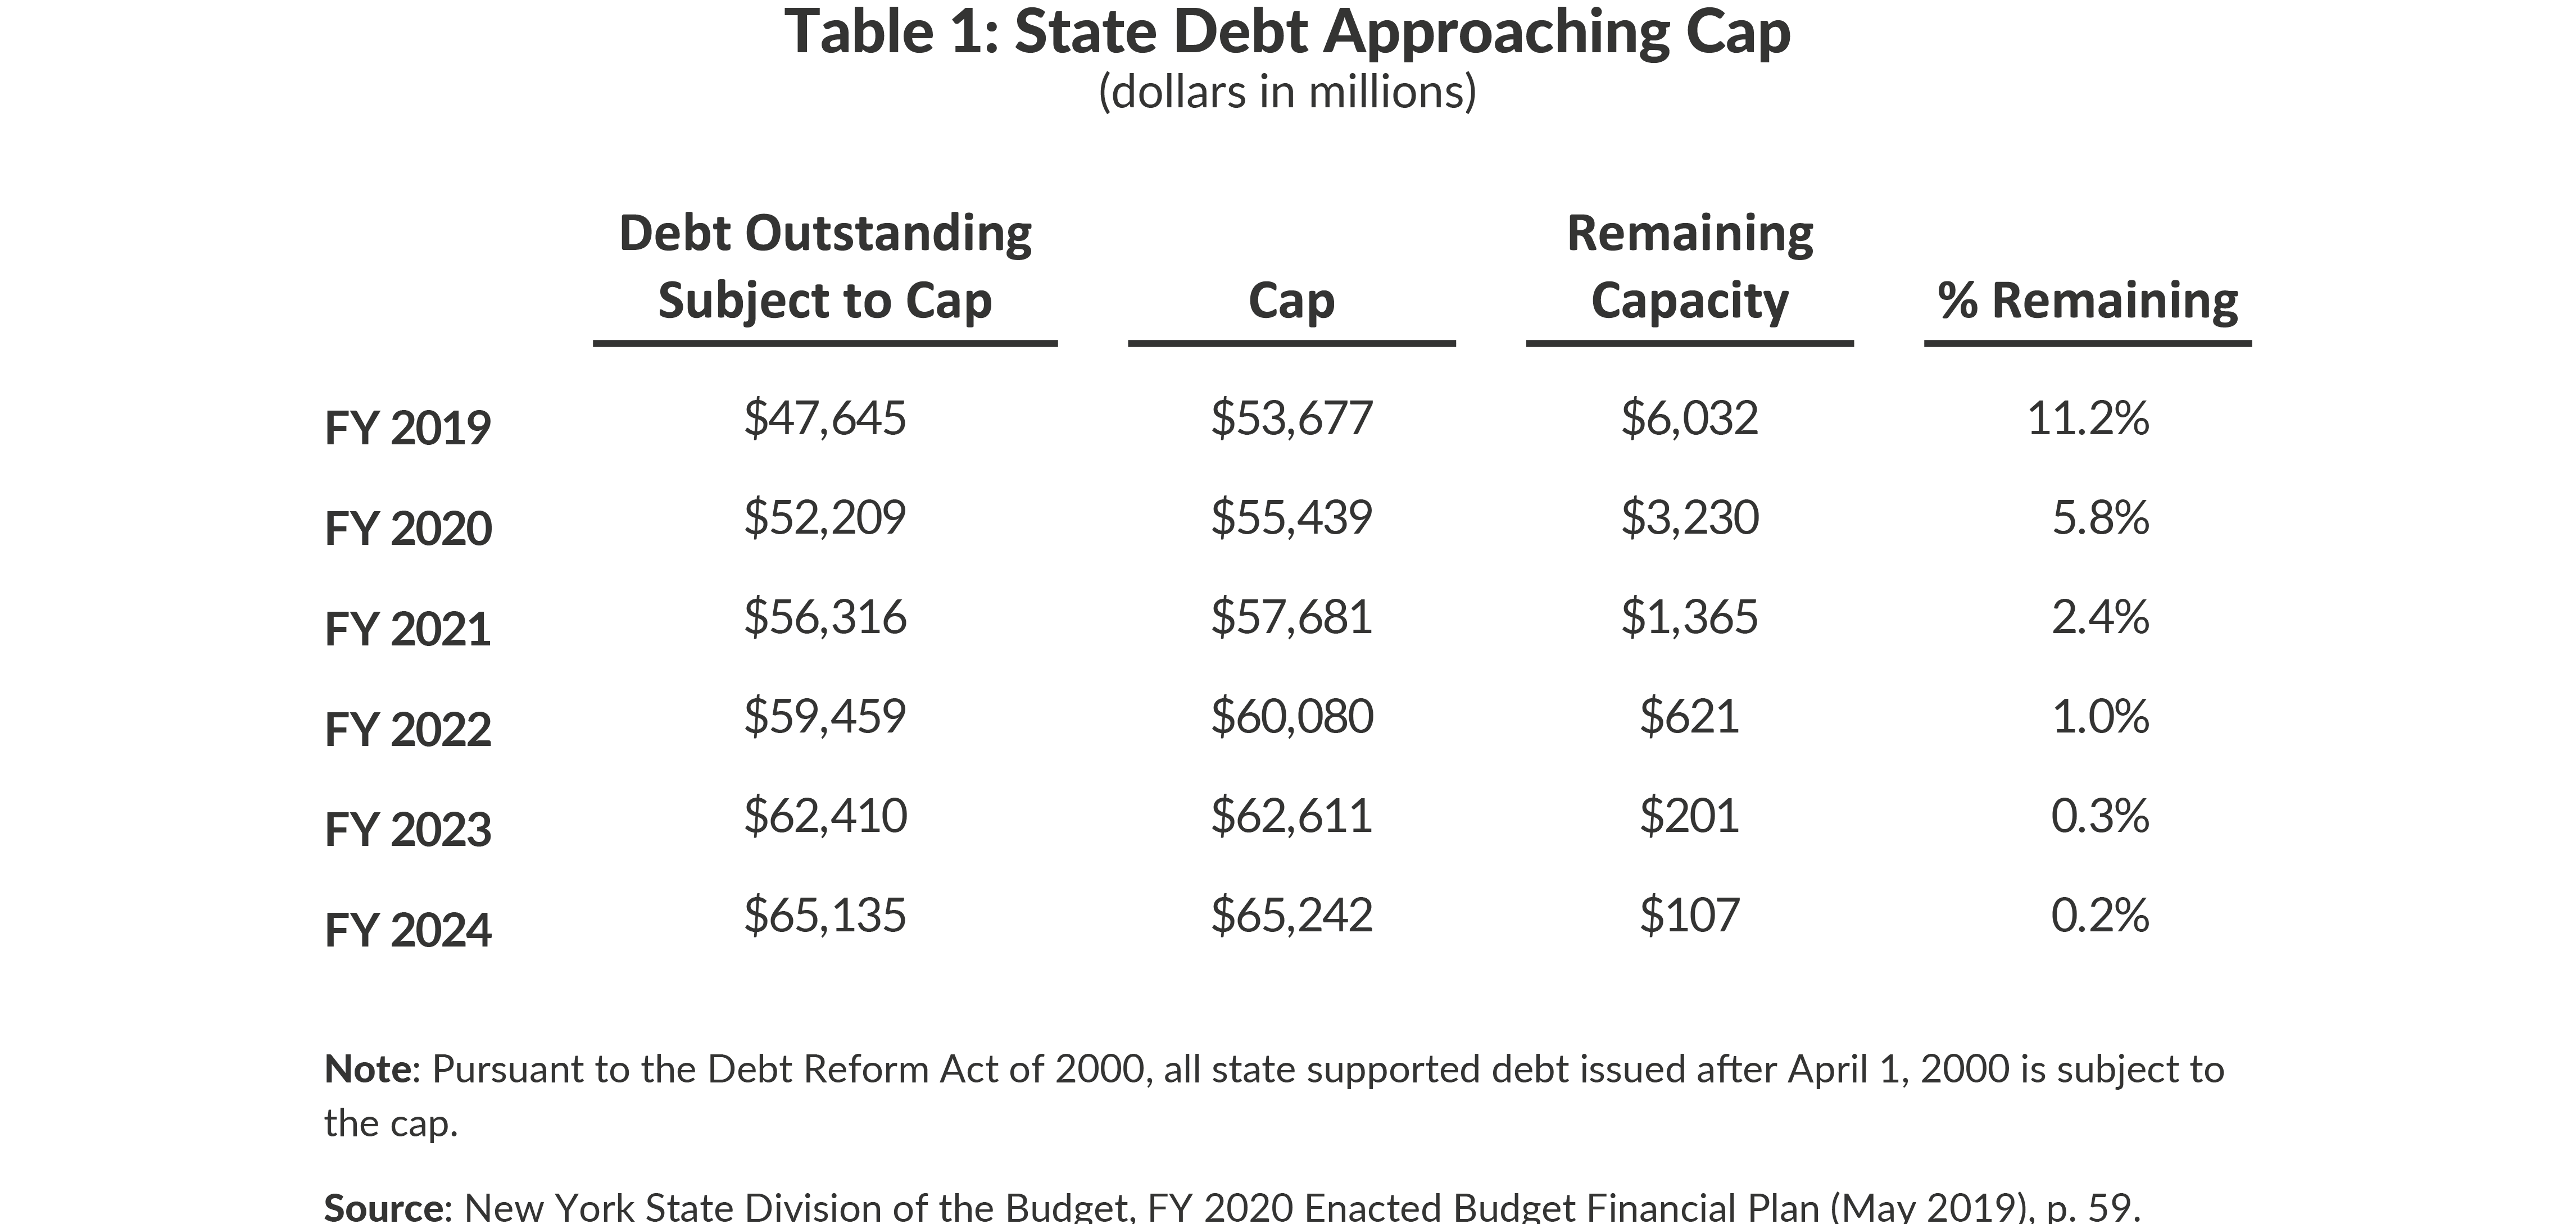 Table 1: State Debt Approaching Cap